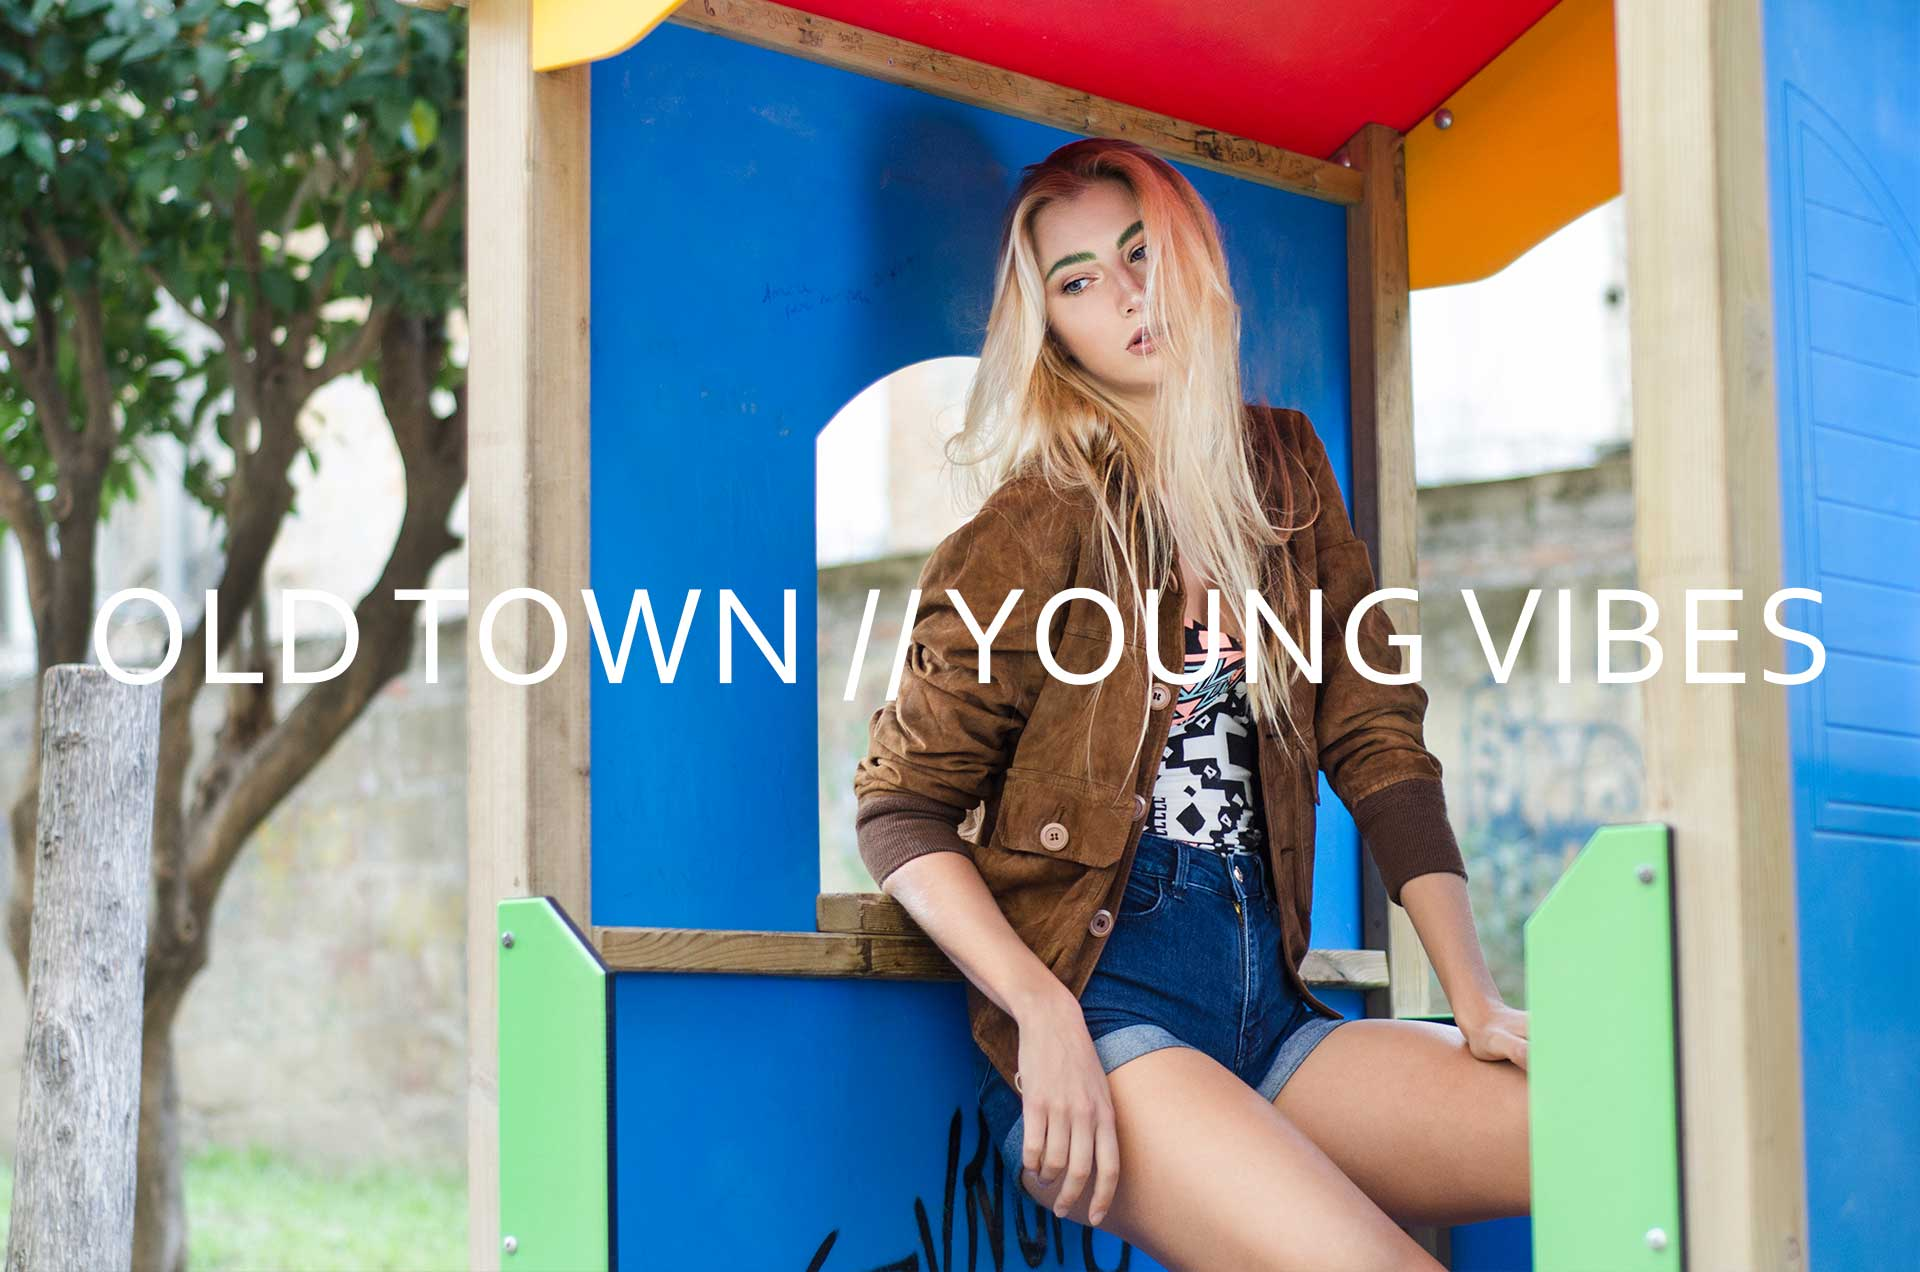 old-town-young-vibes-title